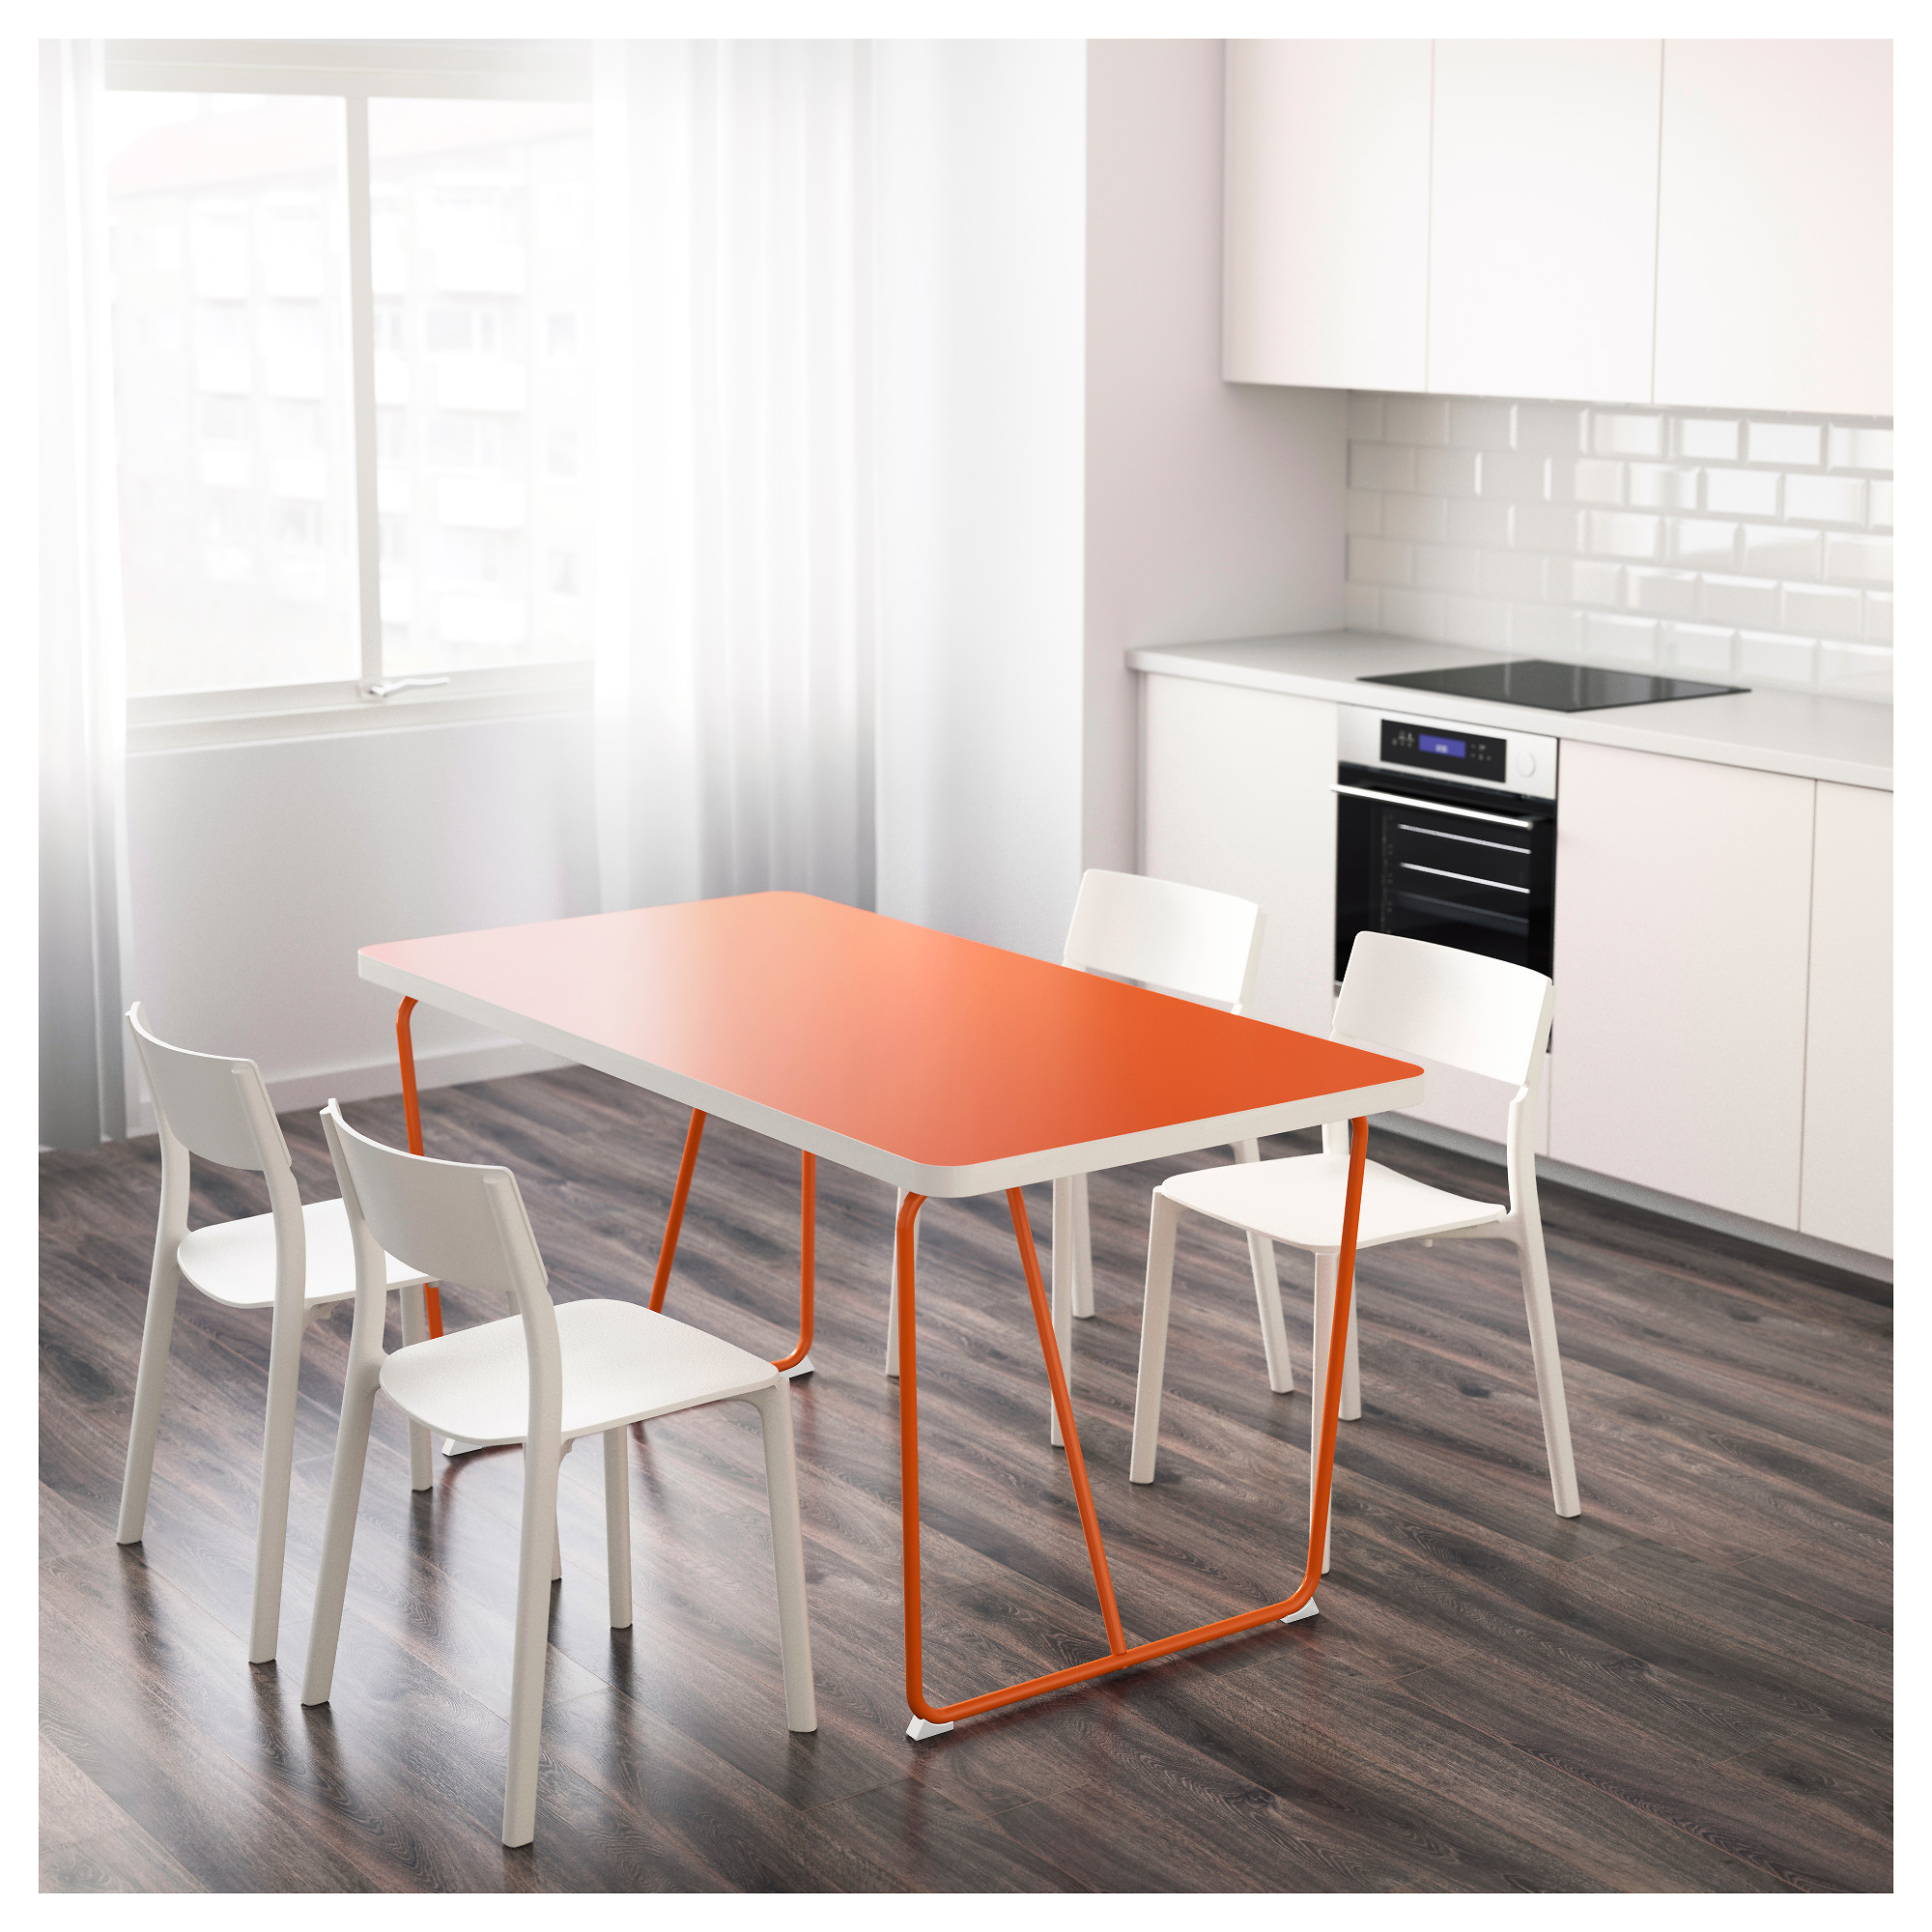 rydebäck table backaryd orange ikea